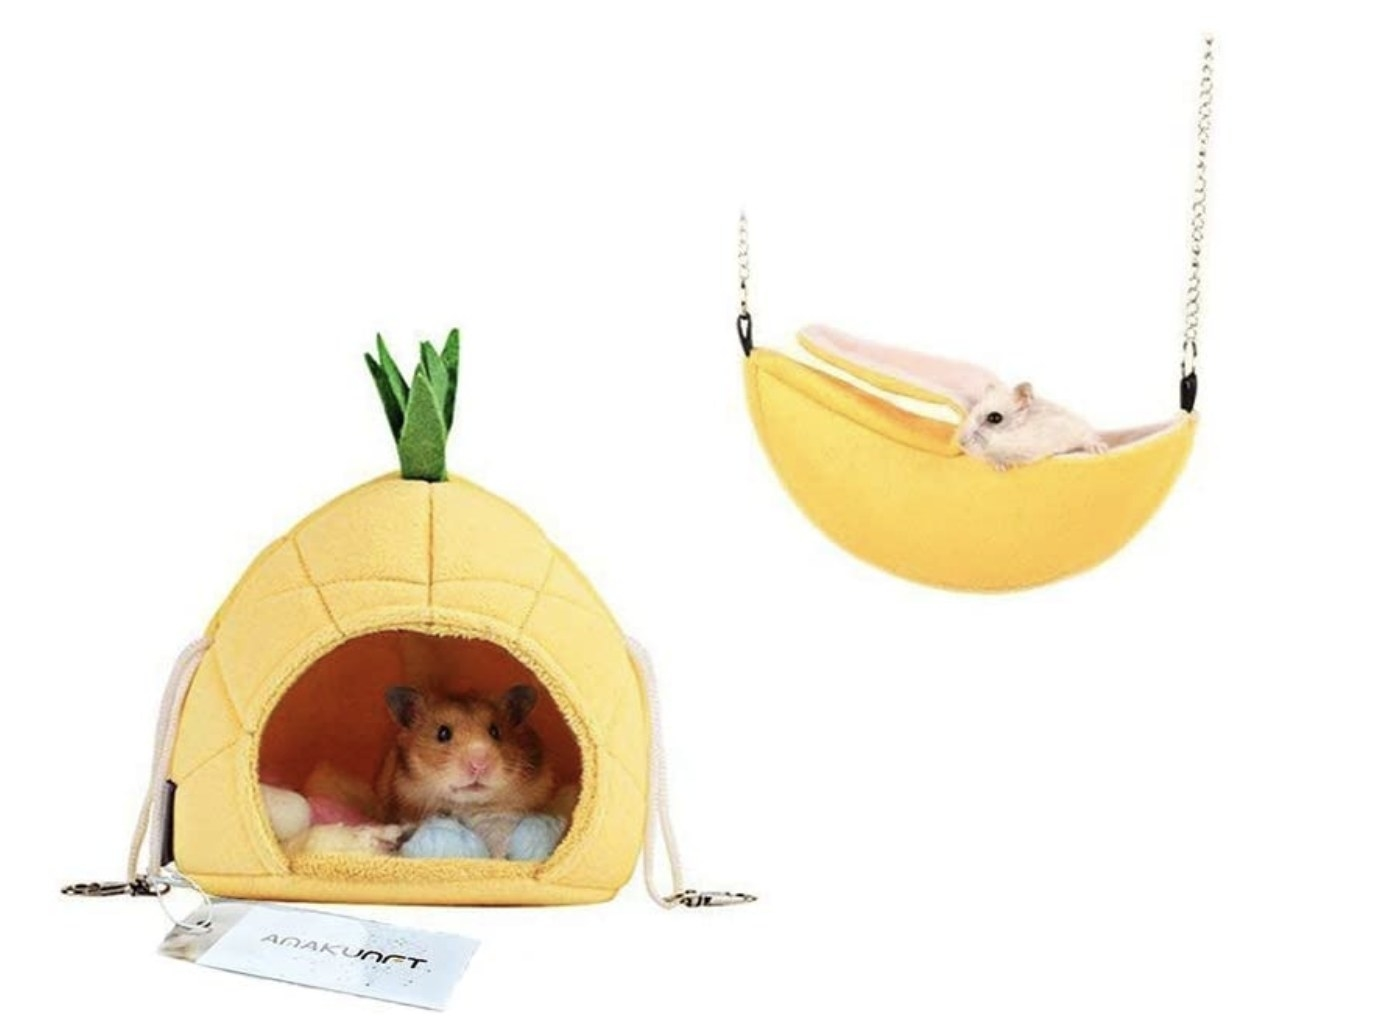 One hamster in a yellow pineapple bed and another in a plush yellow hammock